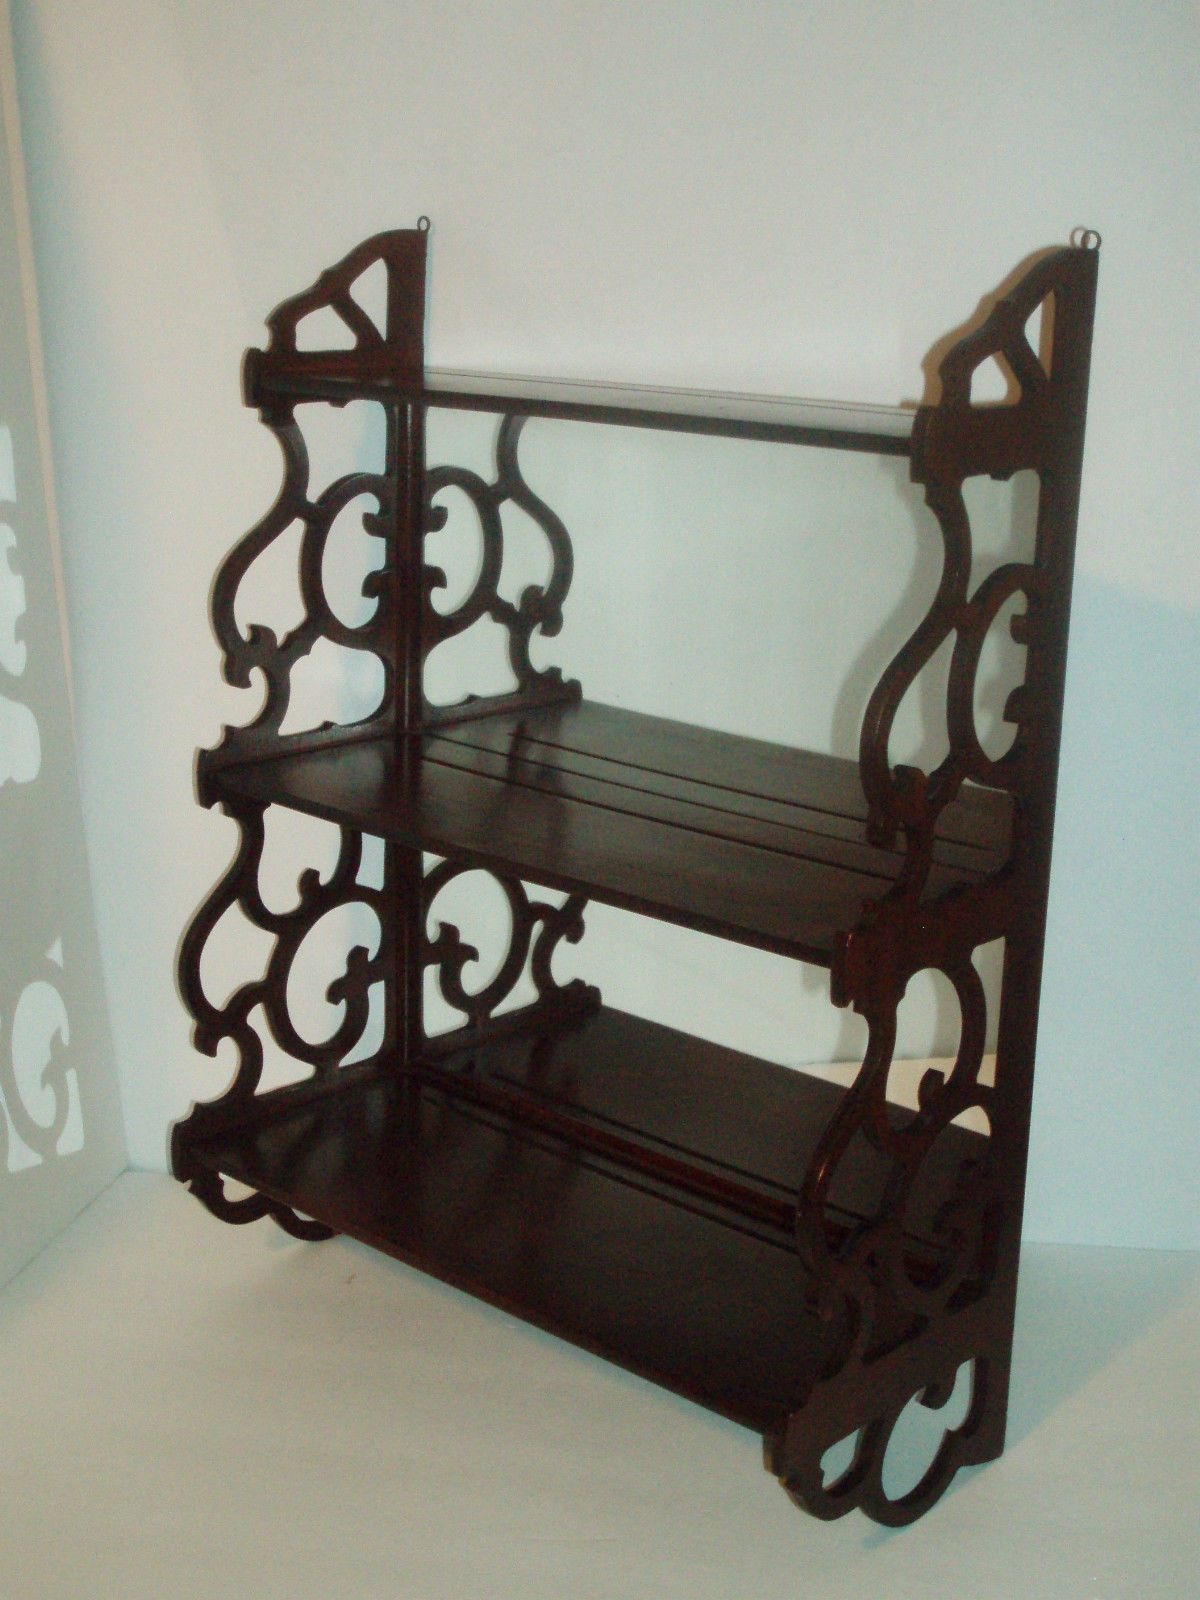 Vintage Mahogany 3 Tiered Wall Shelf Curio With Mirror Back And Fretwork Sides